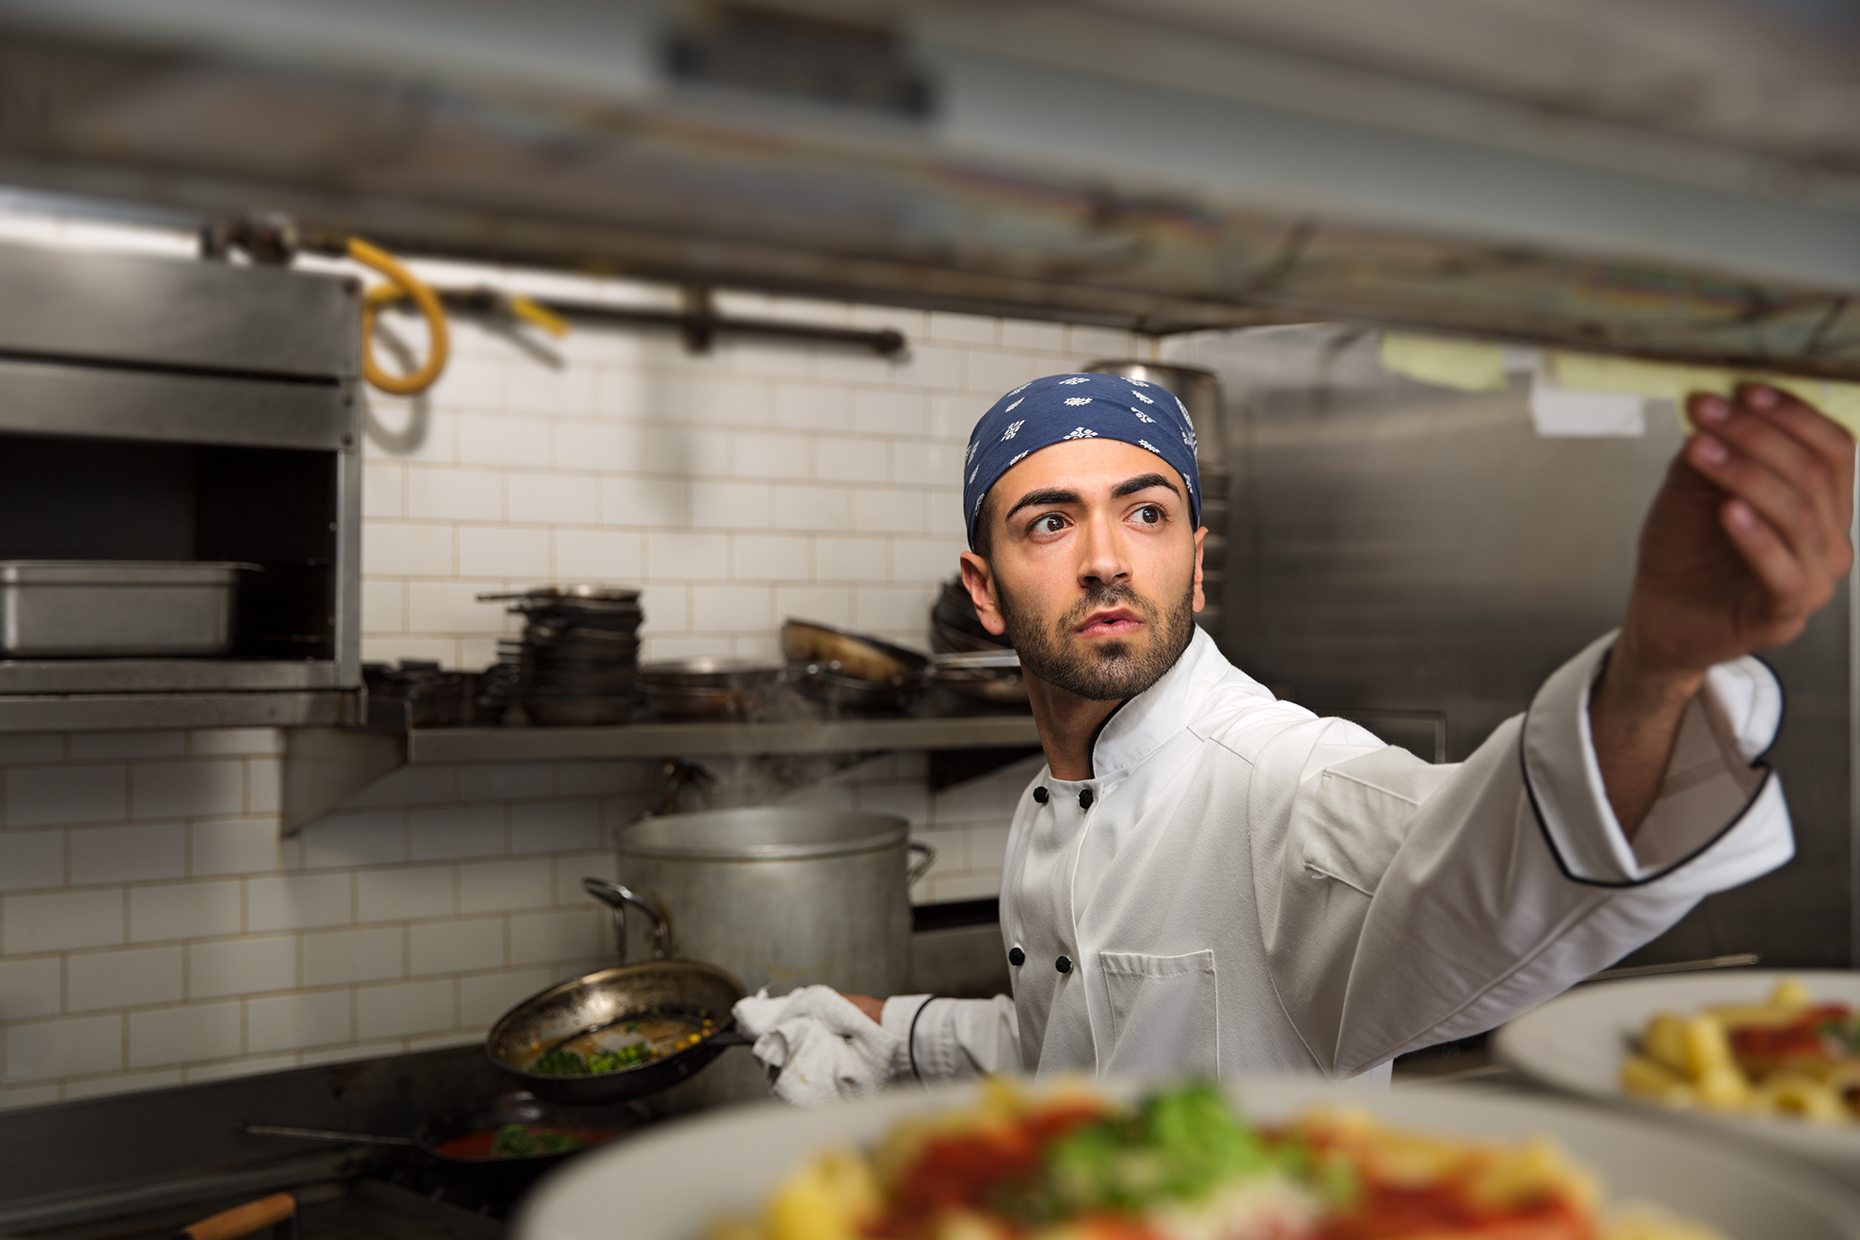 RESTAURANT_CHEF-A_0025-Edit